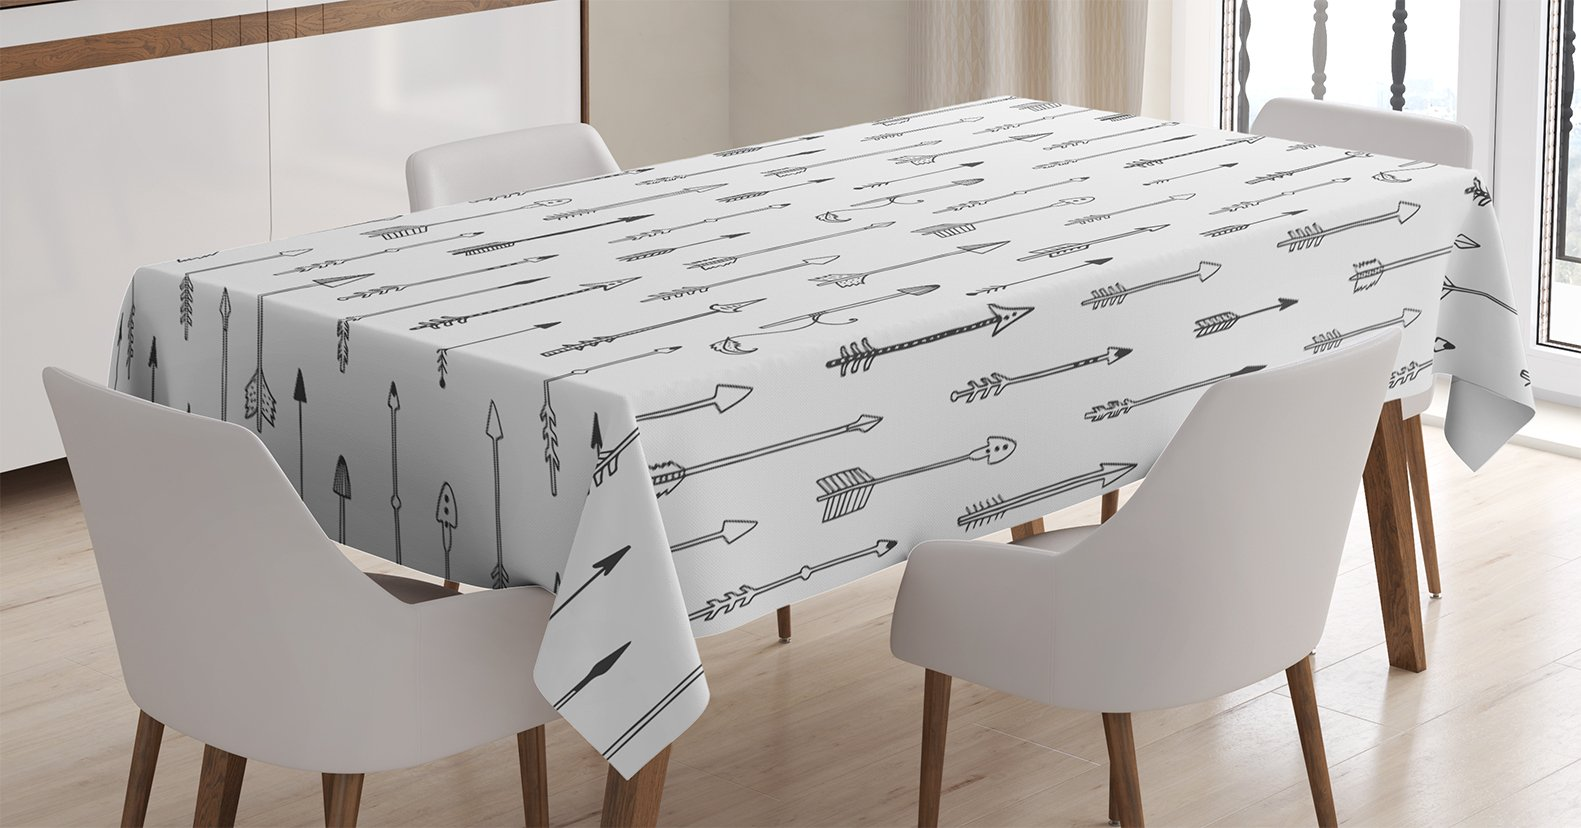 "Ambesonne Arrow Tablecloth, Nostalgic Tribal Motifs Contemporary Graphic of Retro Native Arrows Culture, Rectangular Table Cover for Dining Room Kitchen Decor, 60"" X 90"", Charcoal Grey - 60 INCHES WIDE x 90 INCHES LONG - Highly unique. Versatile. FUN. MACHINE WASHABLE - Cold cycle. Easy to clean. Durable enough for both indoor and outdoor use. MADE FROM - High quality 100% polyester woven silky satin fabric with hand-sewn finished edges - tablecloths, kitchen-dining-room-table-linens, kitchen-dining-room - 71TC RMdb1L -"